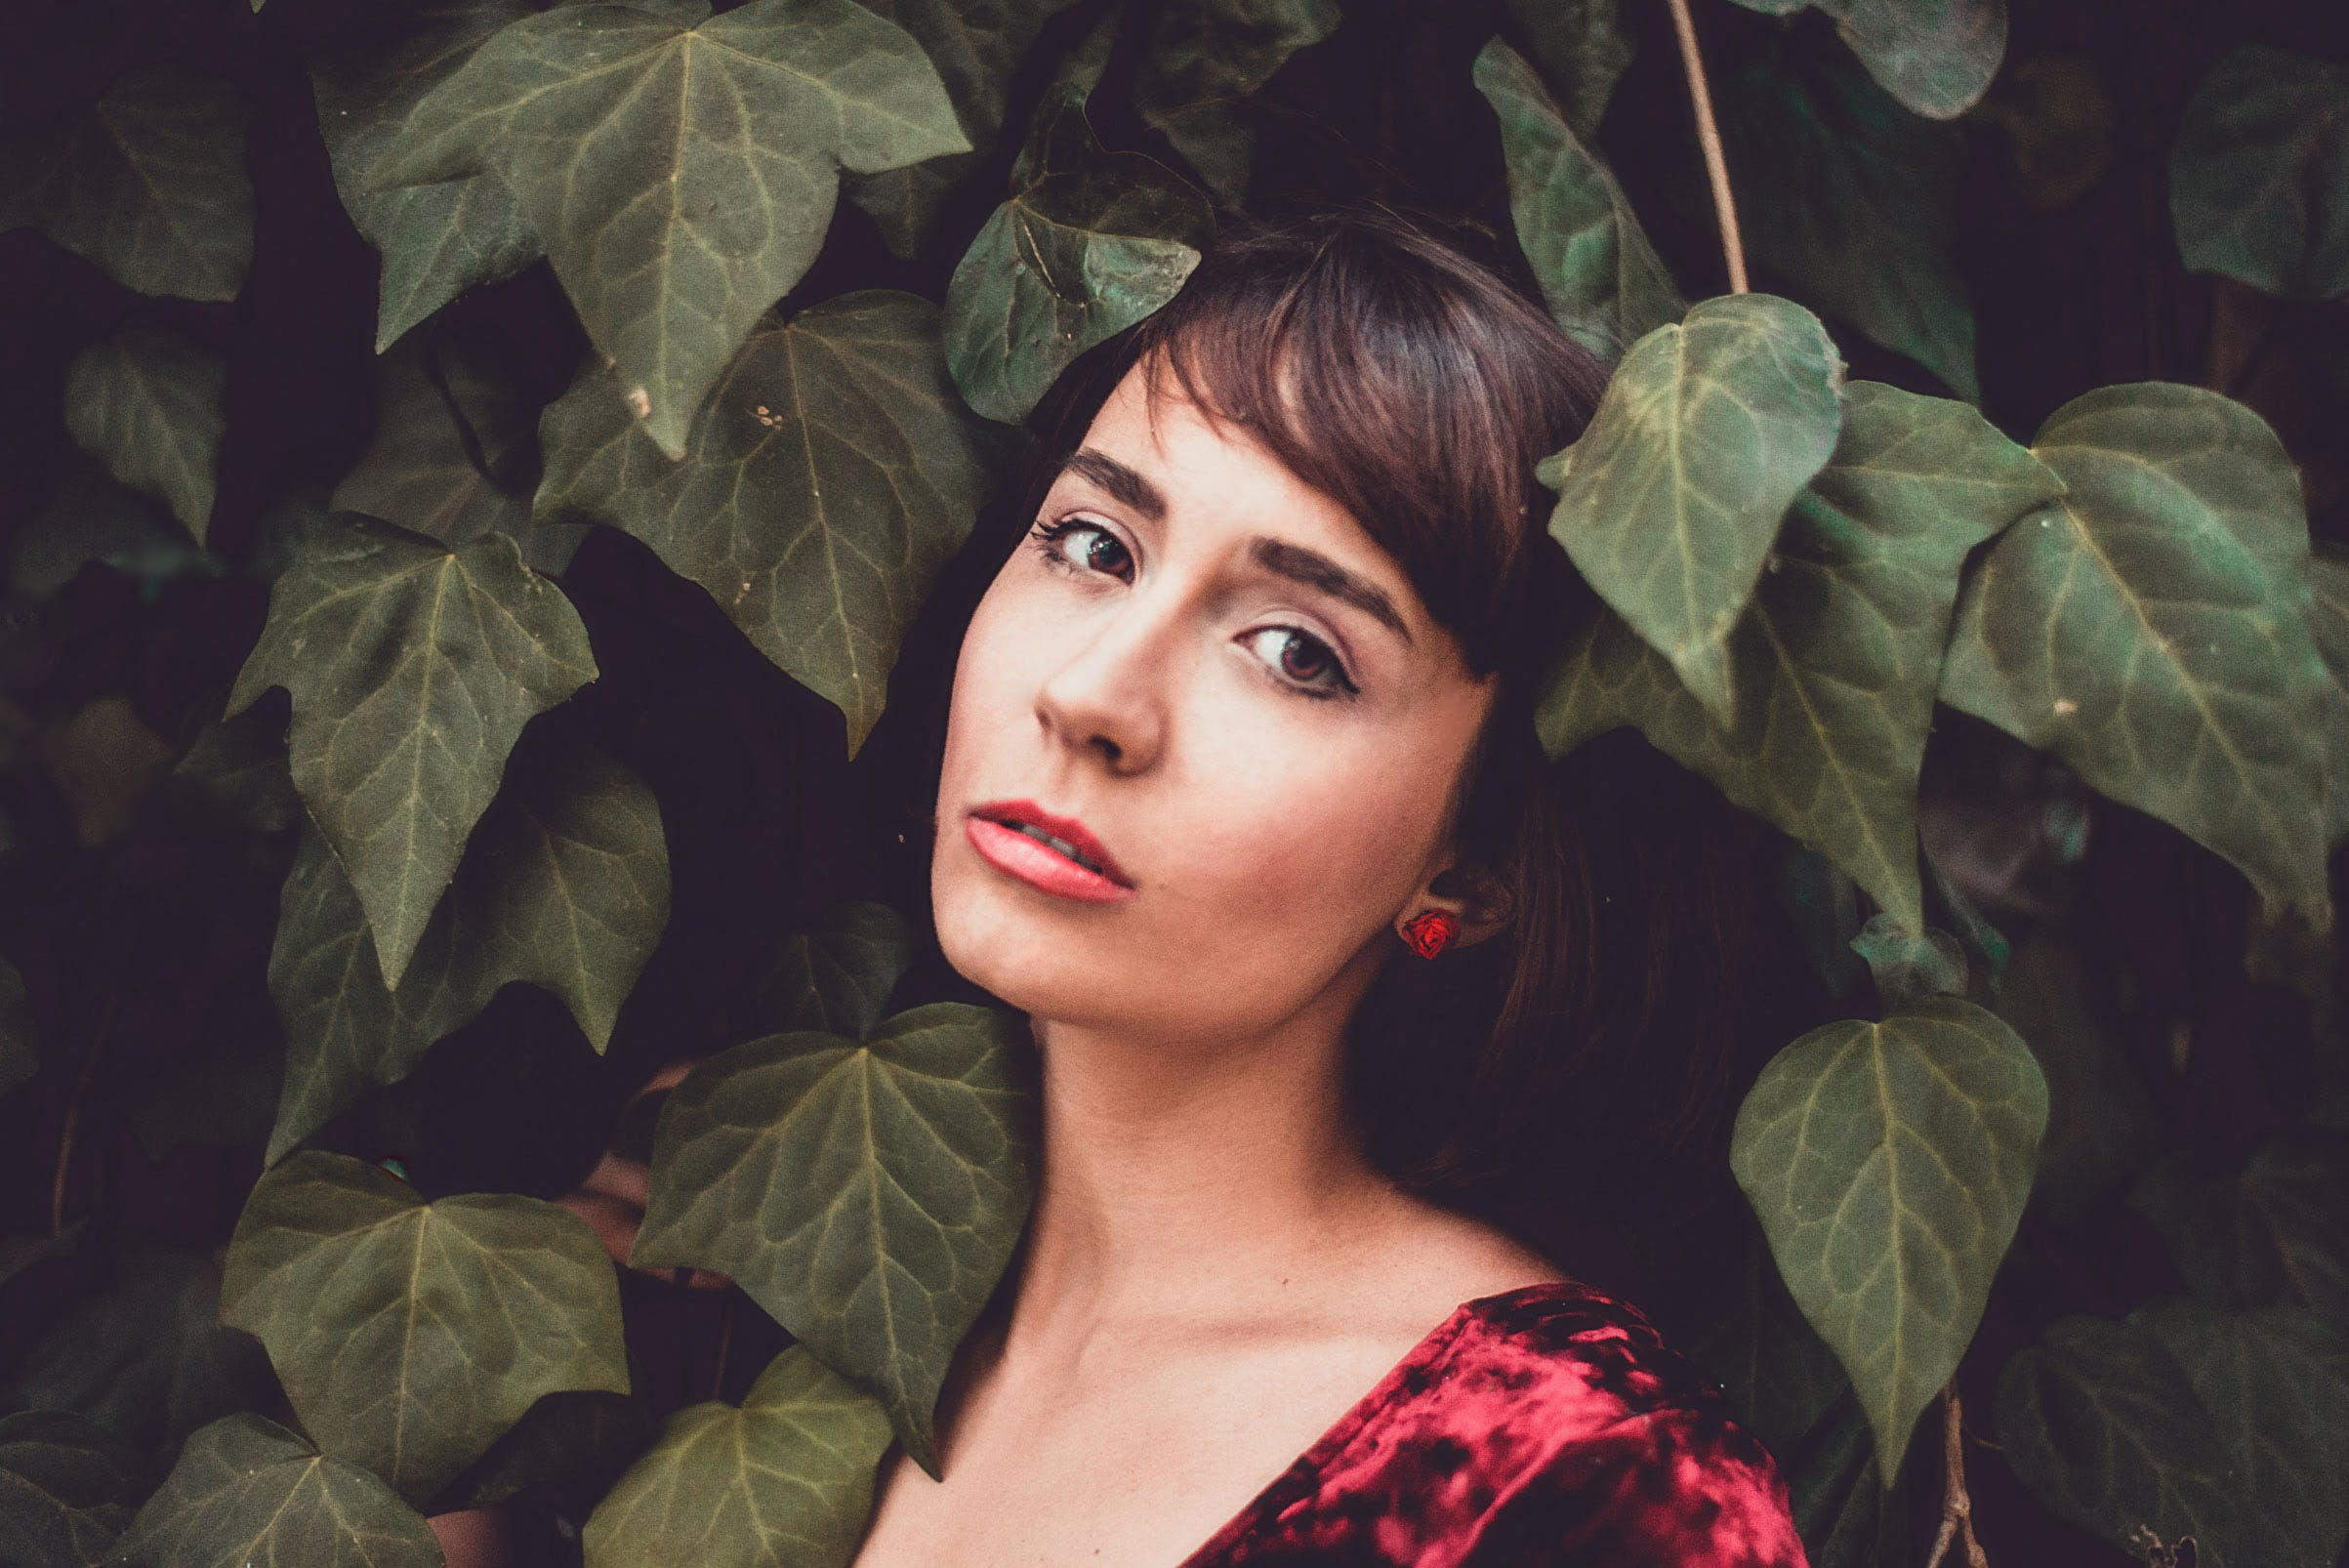 Woman Wearing Red Top Behind Green Leafed Plants